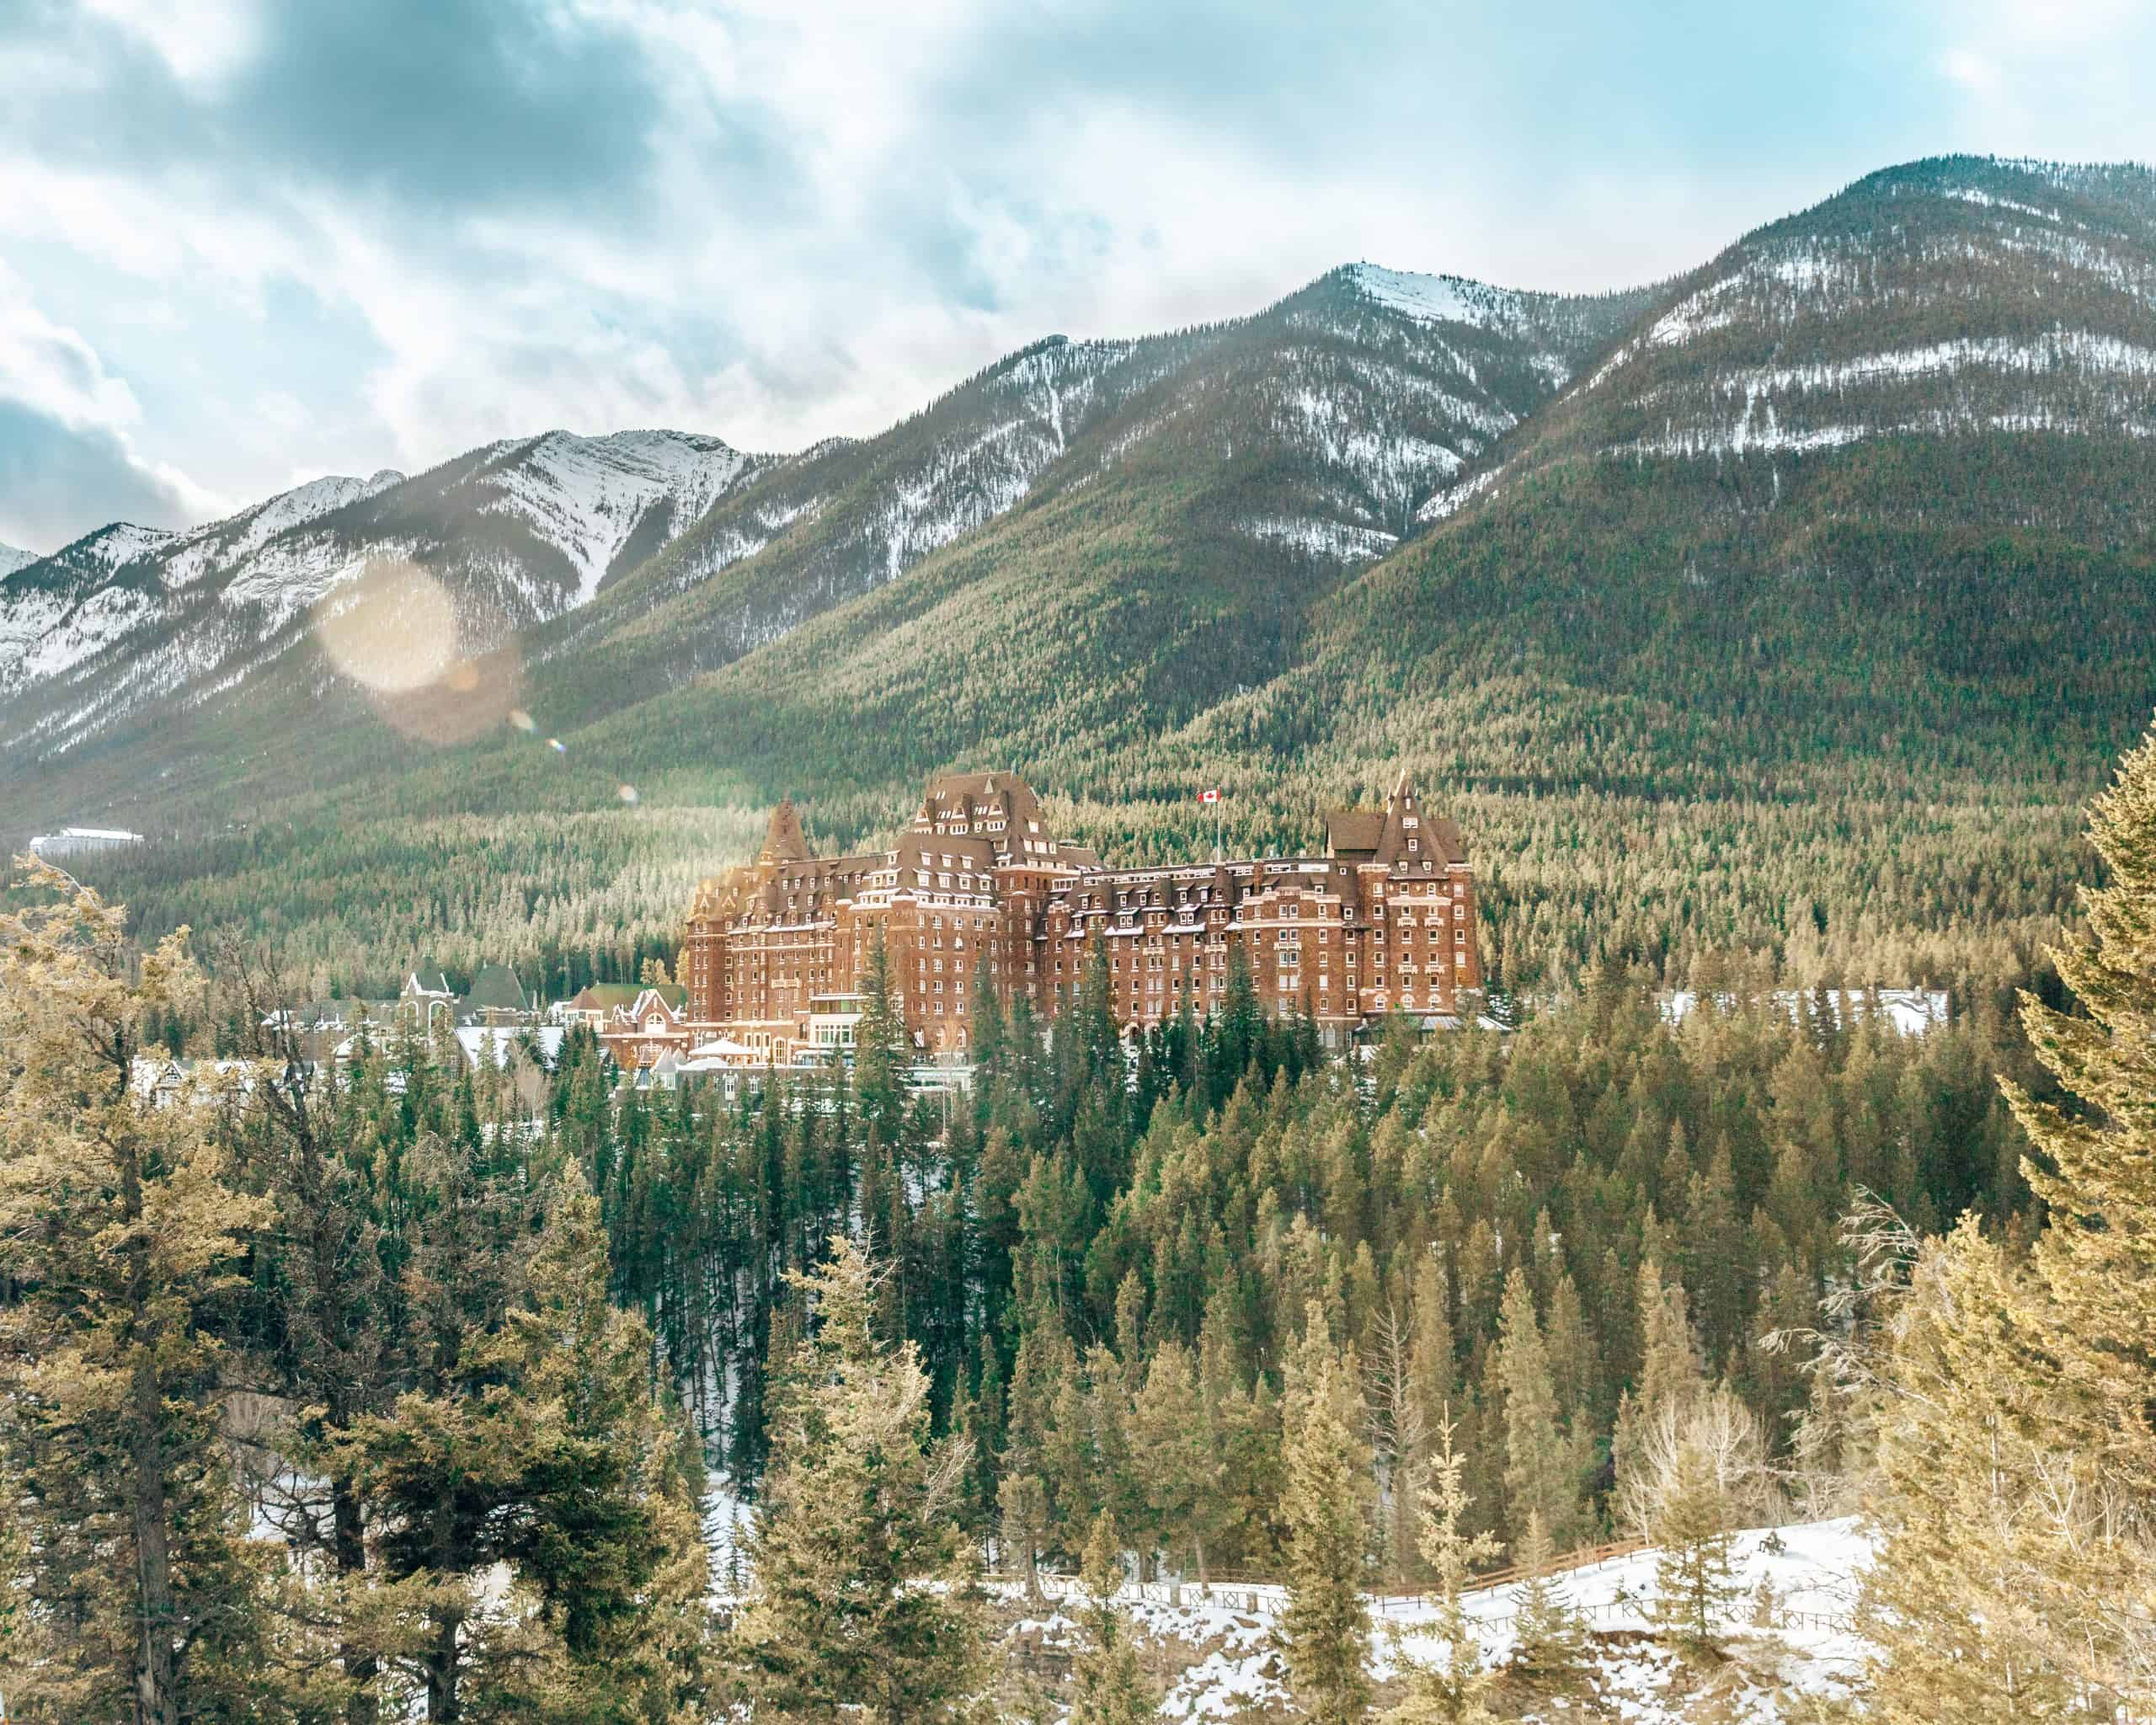 View of Fairmont Springs Hotel in Banff - The Next Trip